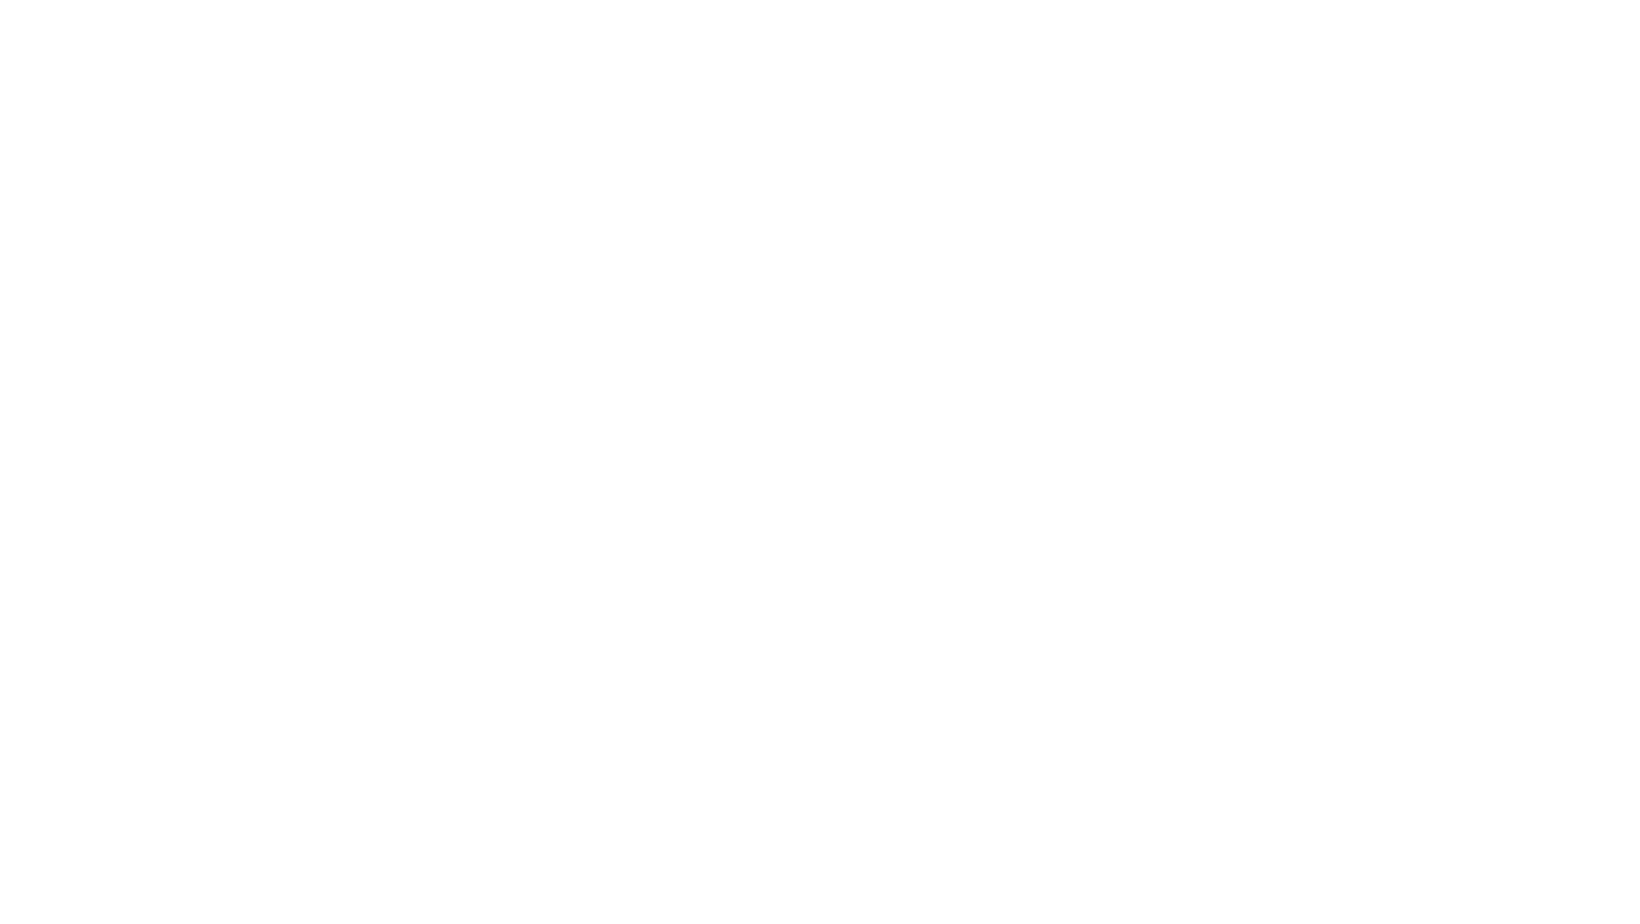 Generation Builders Ministries Online Store